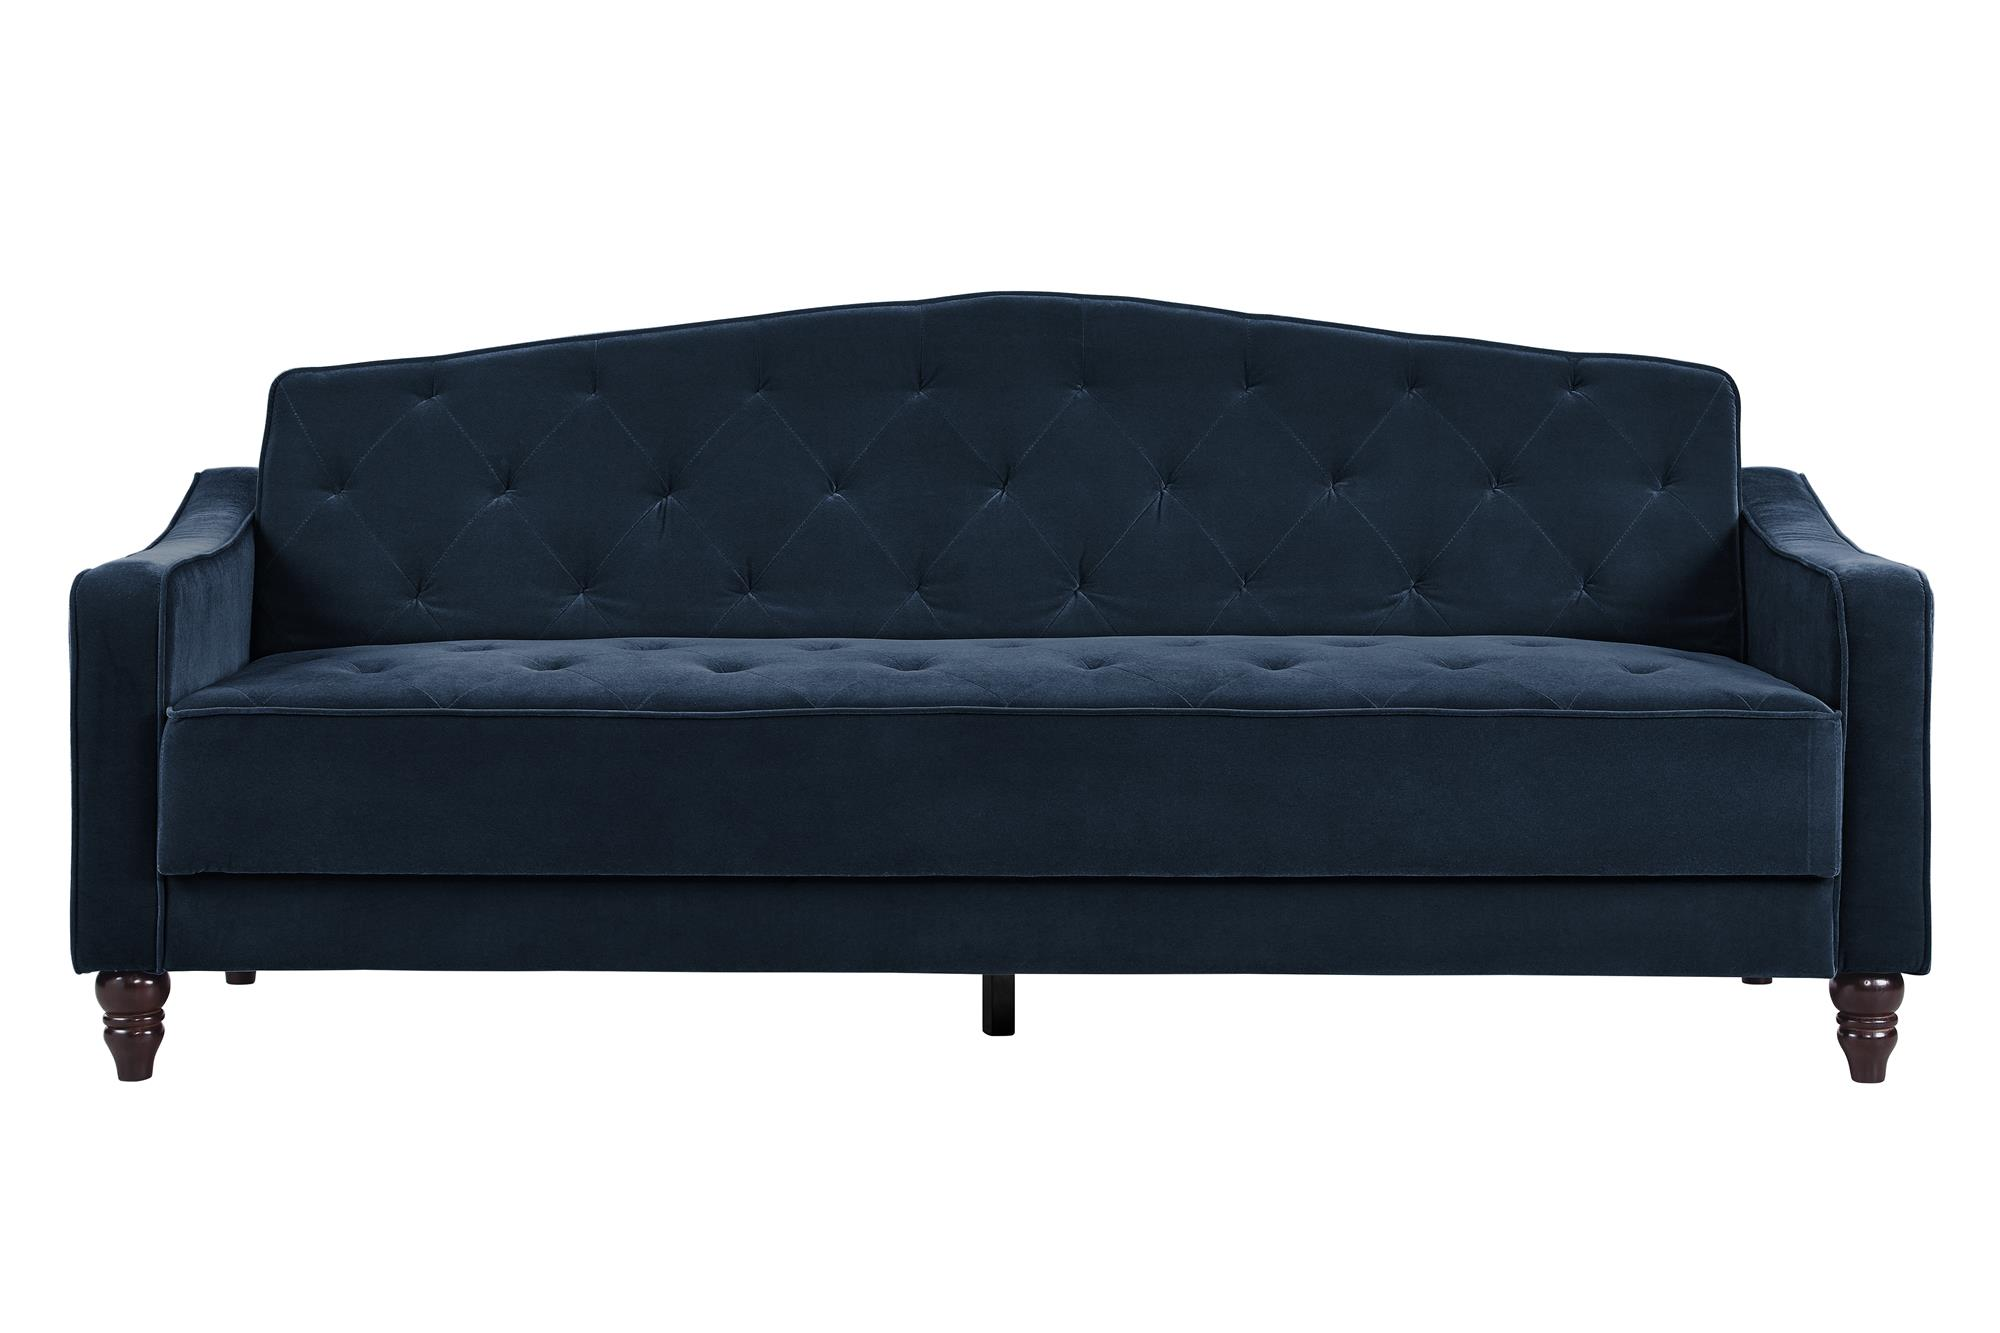 Hochwertig Novogratz Vintage Tufted Sofa Sleeper II, Multiple Colors   Walmart.com